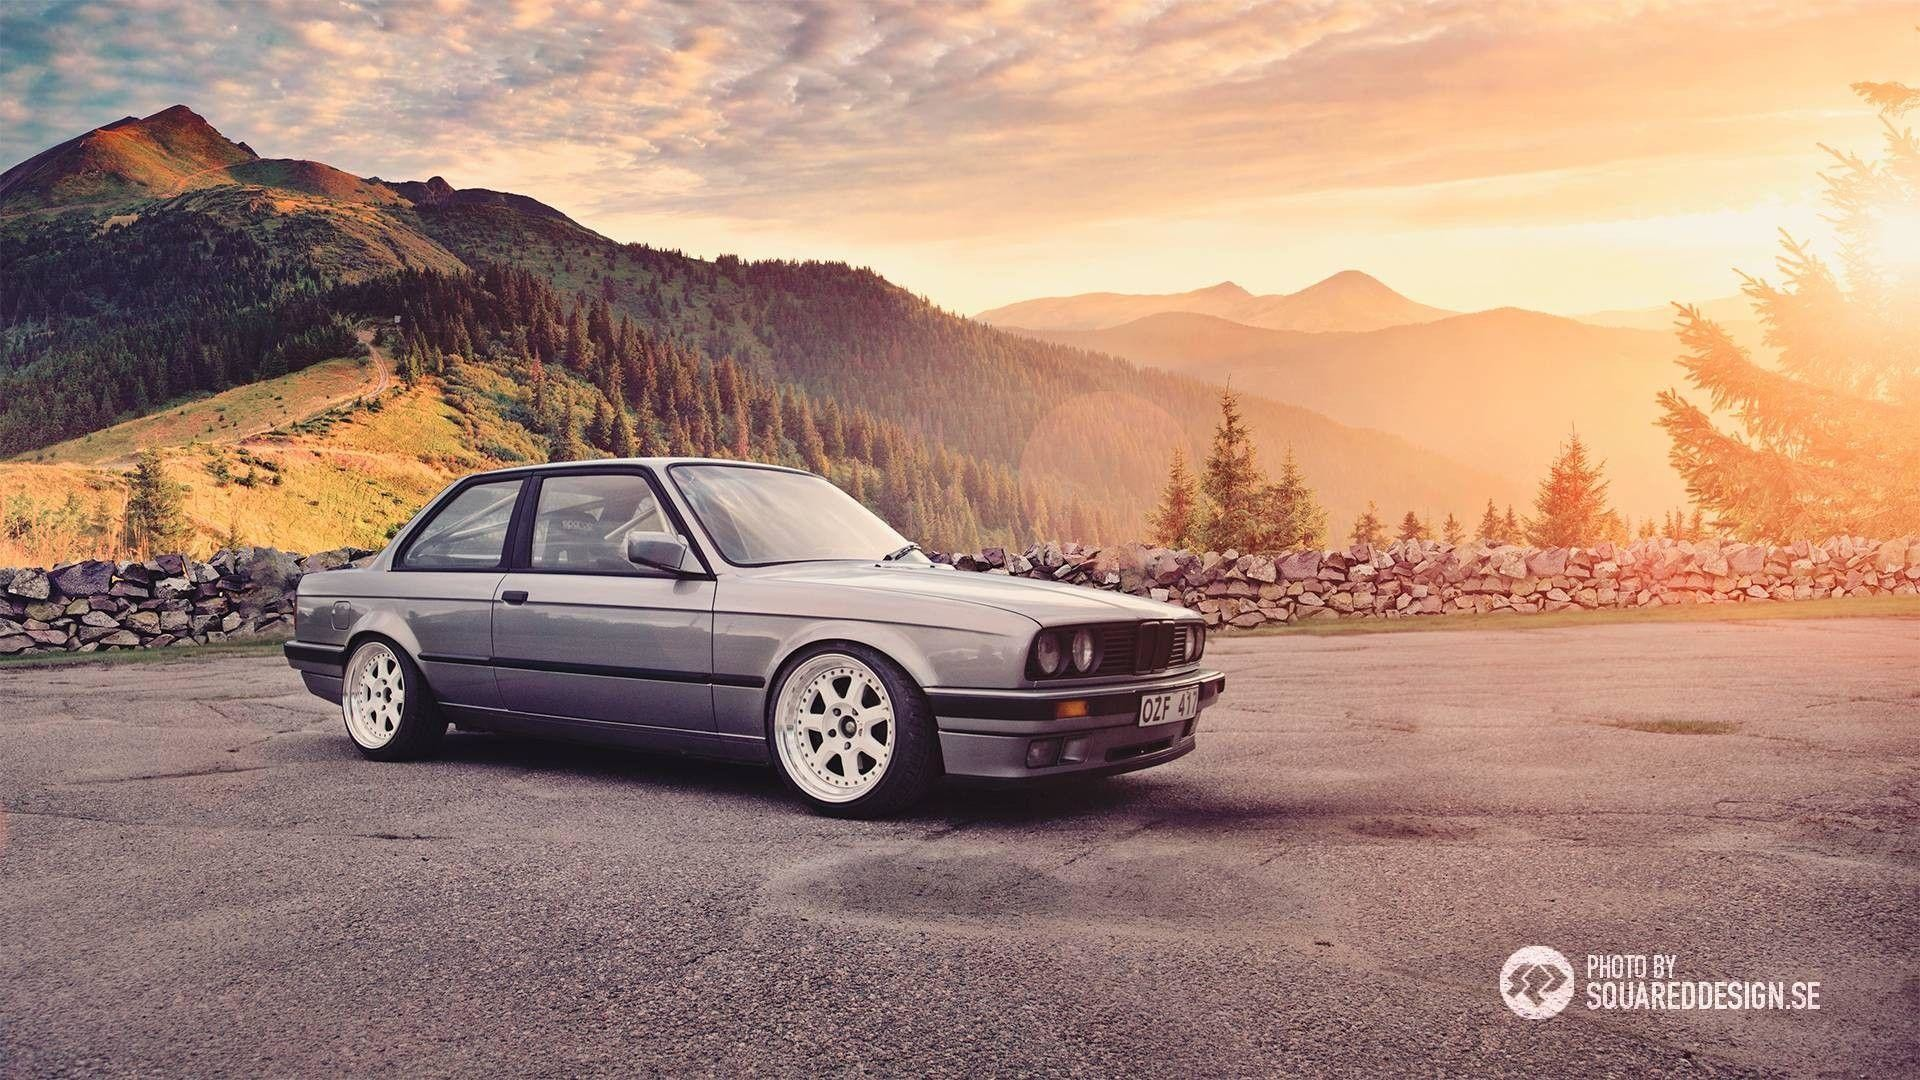 Bmw E30 Wallpaper Hd 67 Images